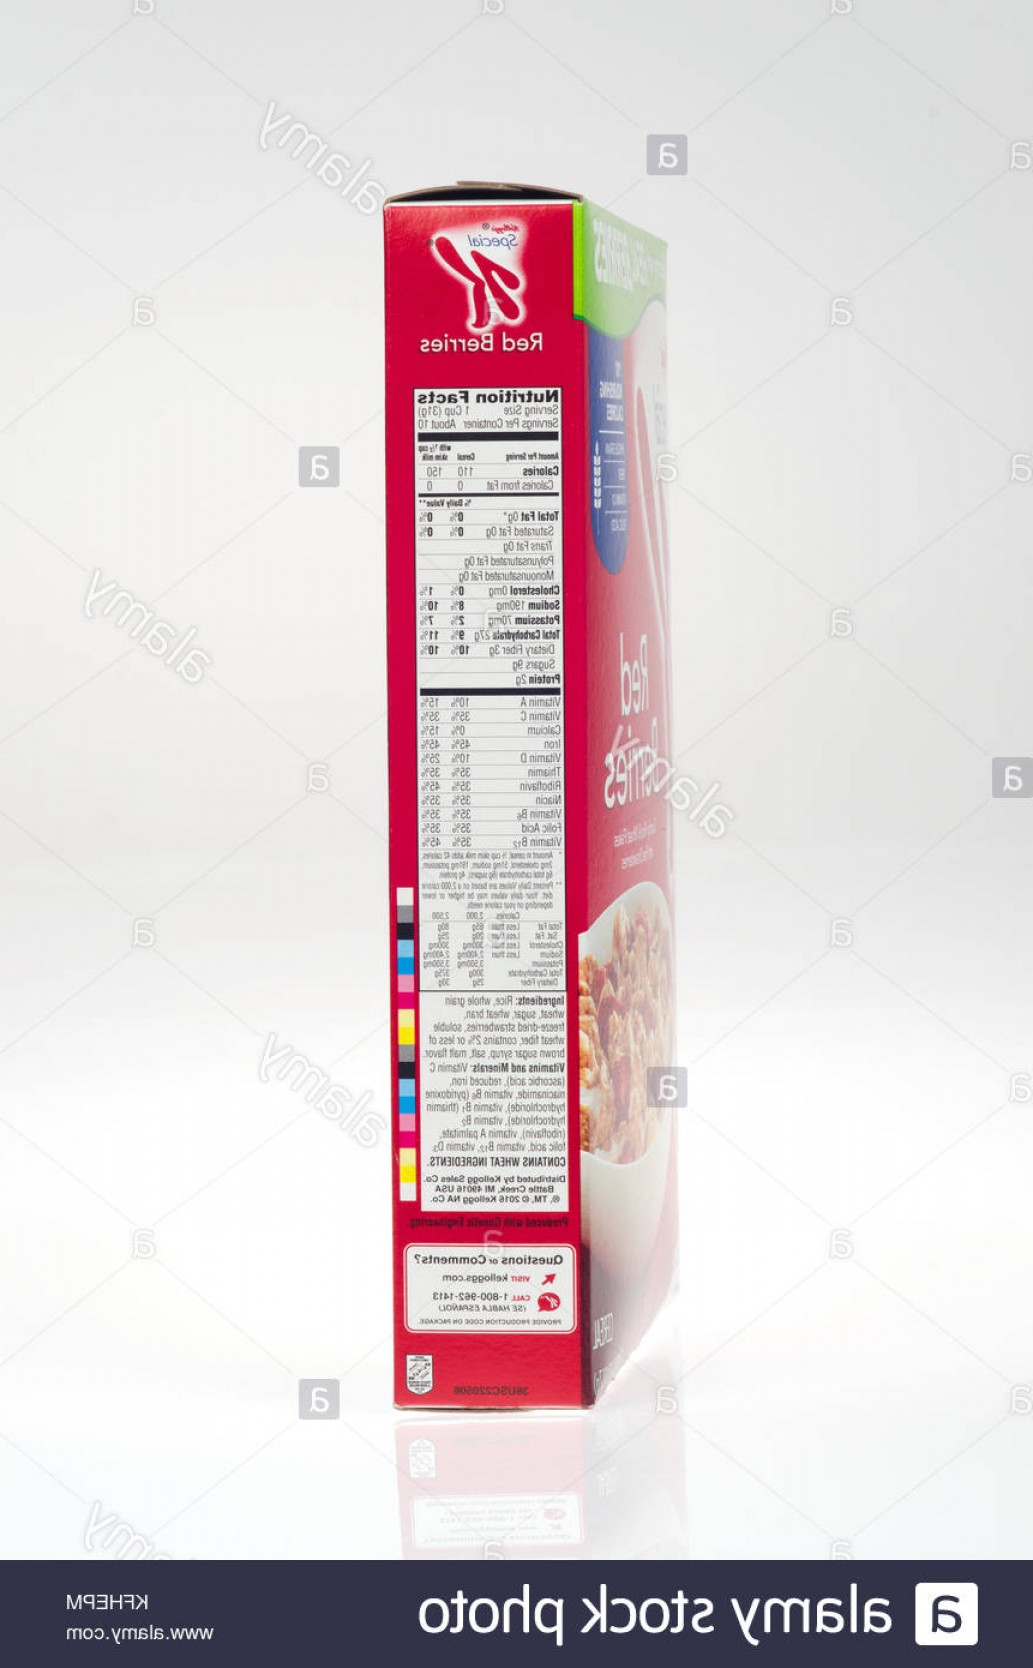 Nutrition Label Kellogg's Vector: Stock Photo Nutrition Facts On Box Of Kelloggs Special K With Red Berries Cereal